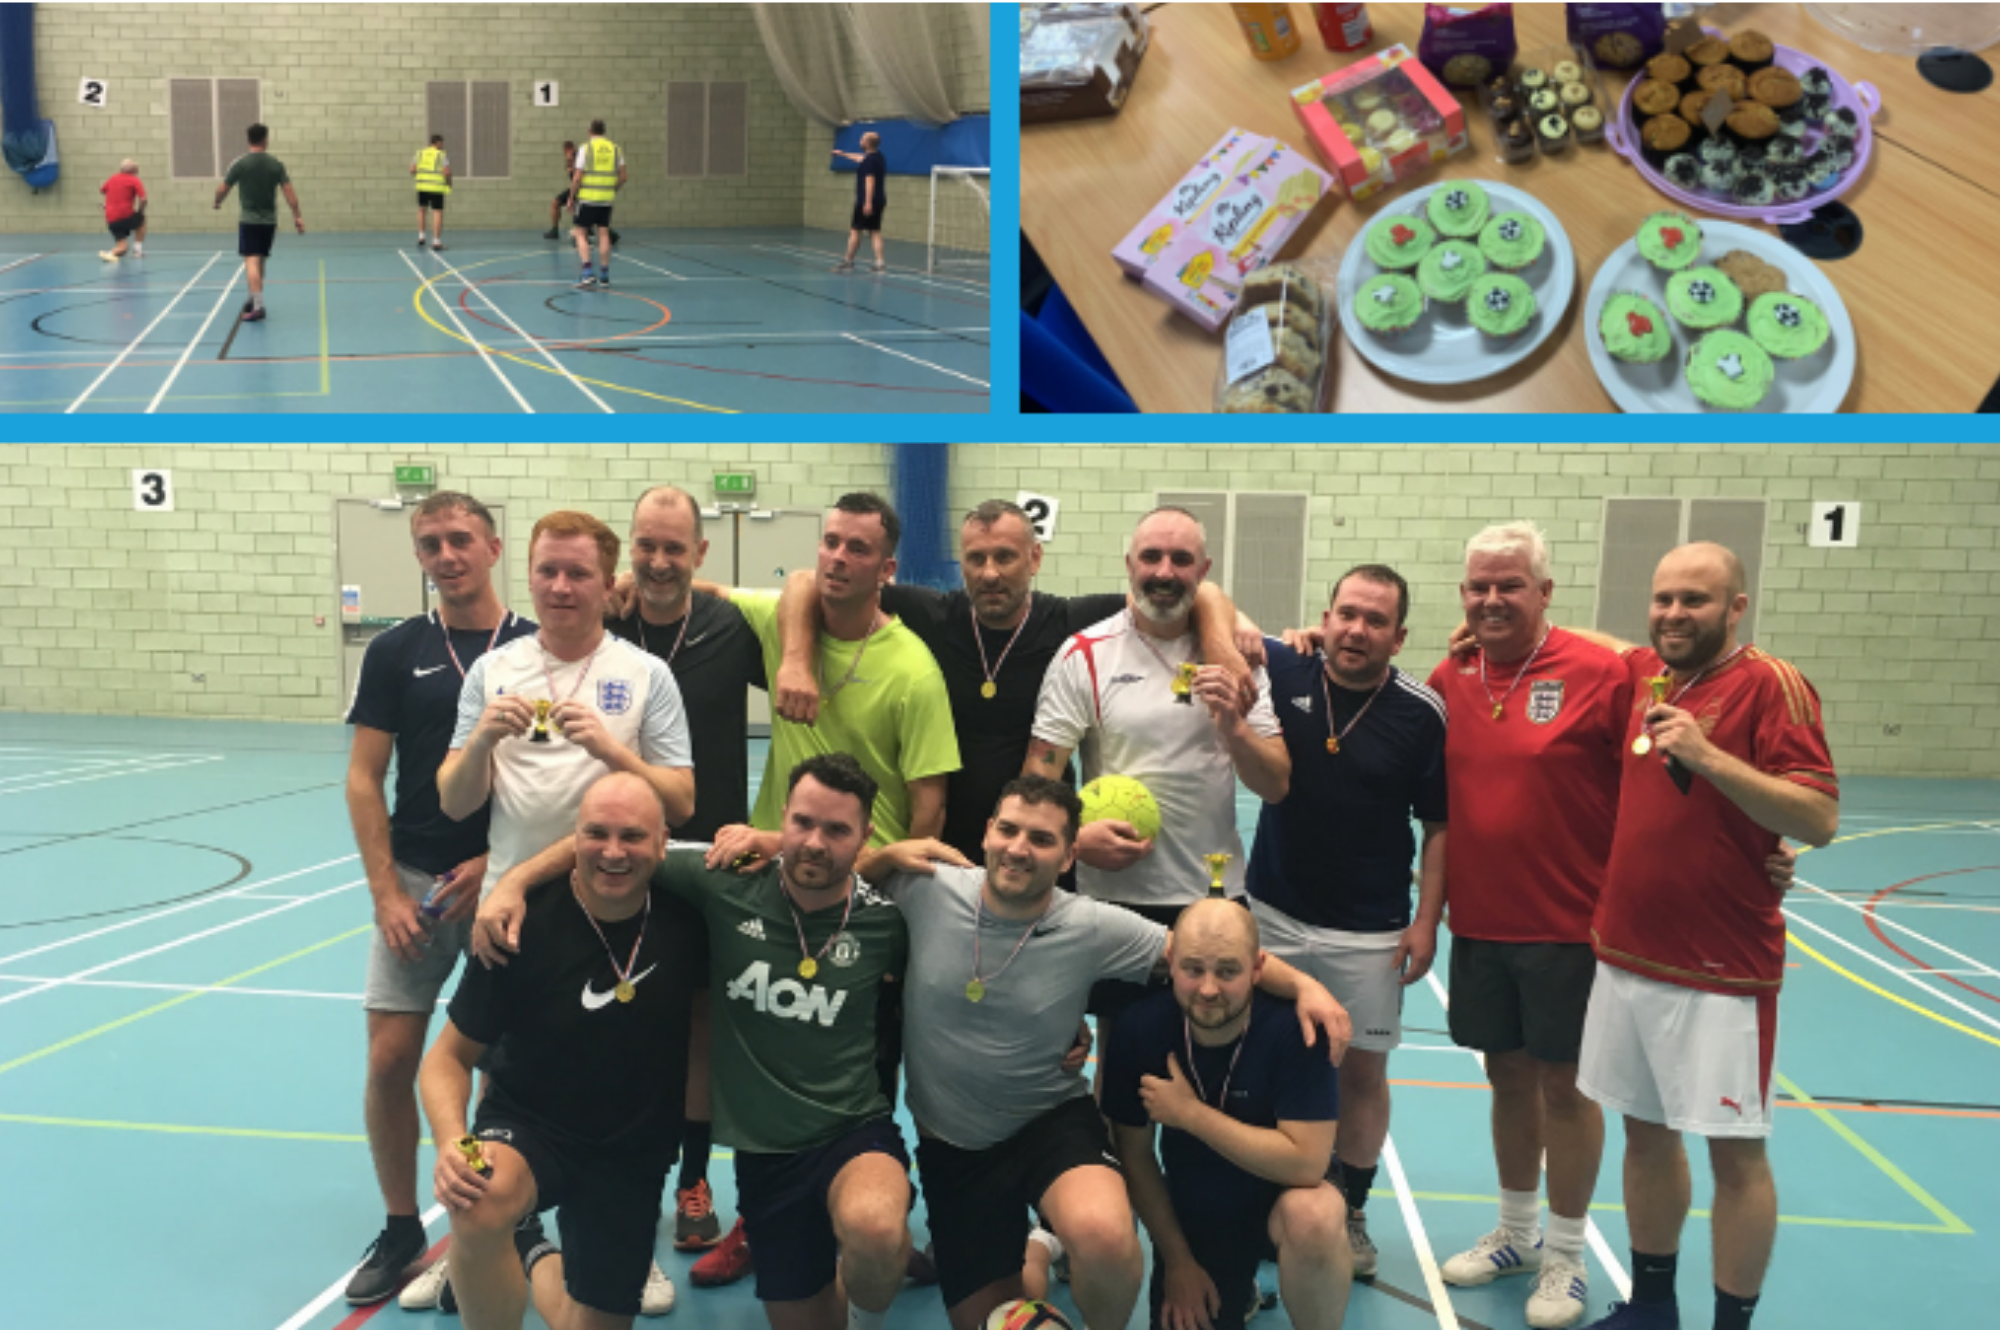 Charity Football Match Raises Funds for Electrical Industries Charity